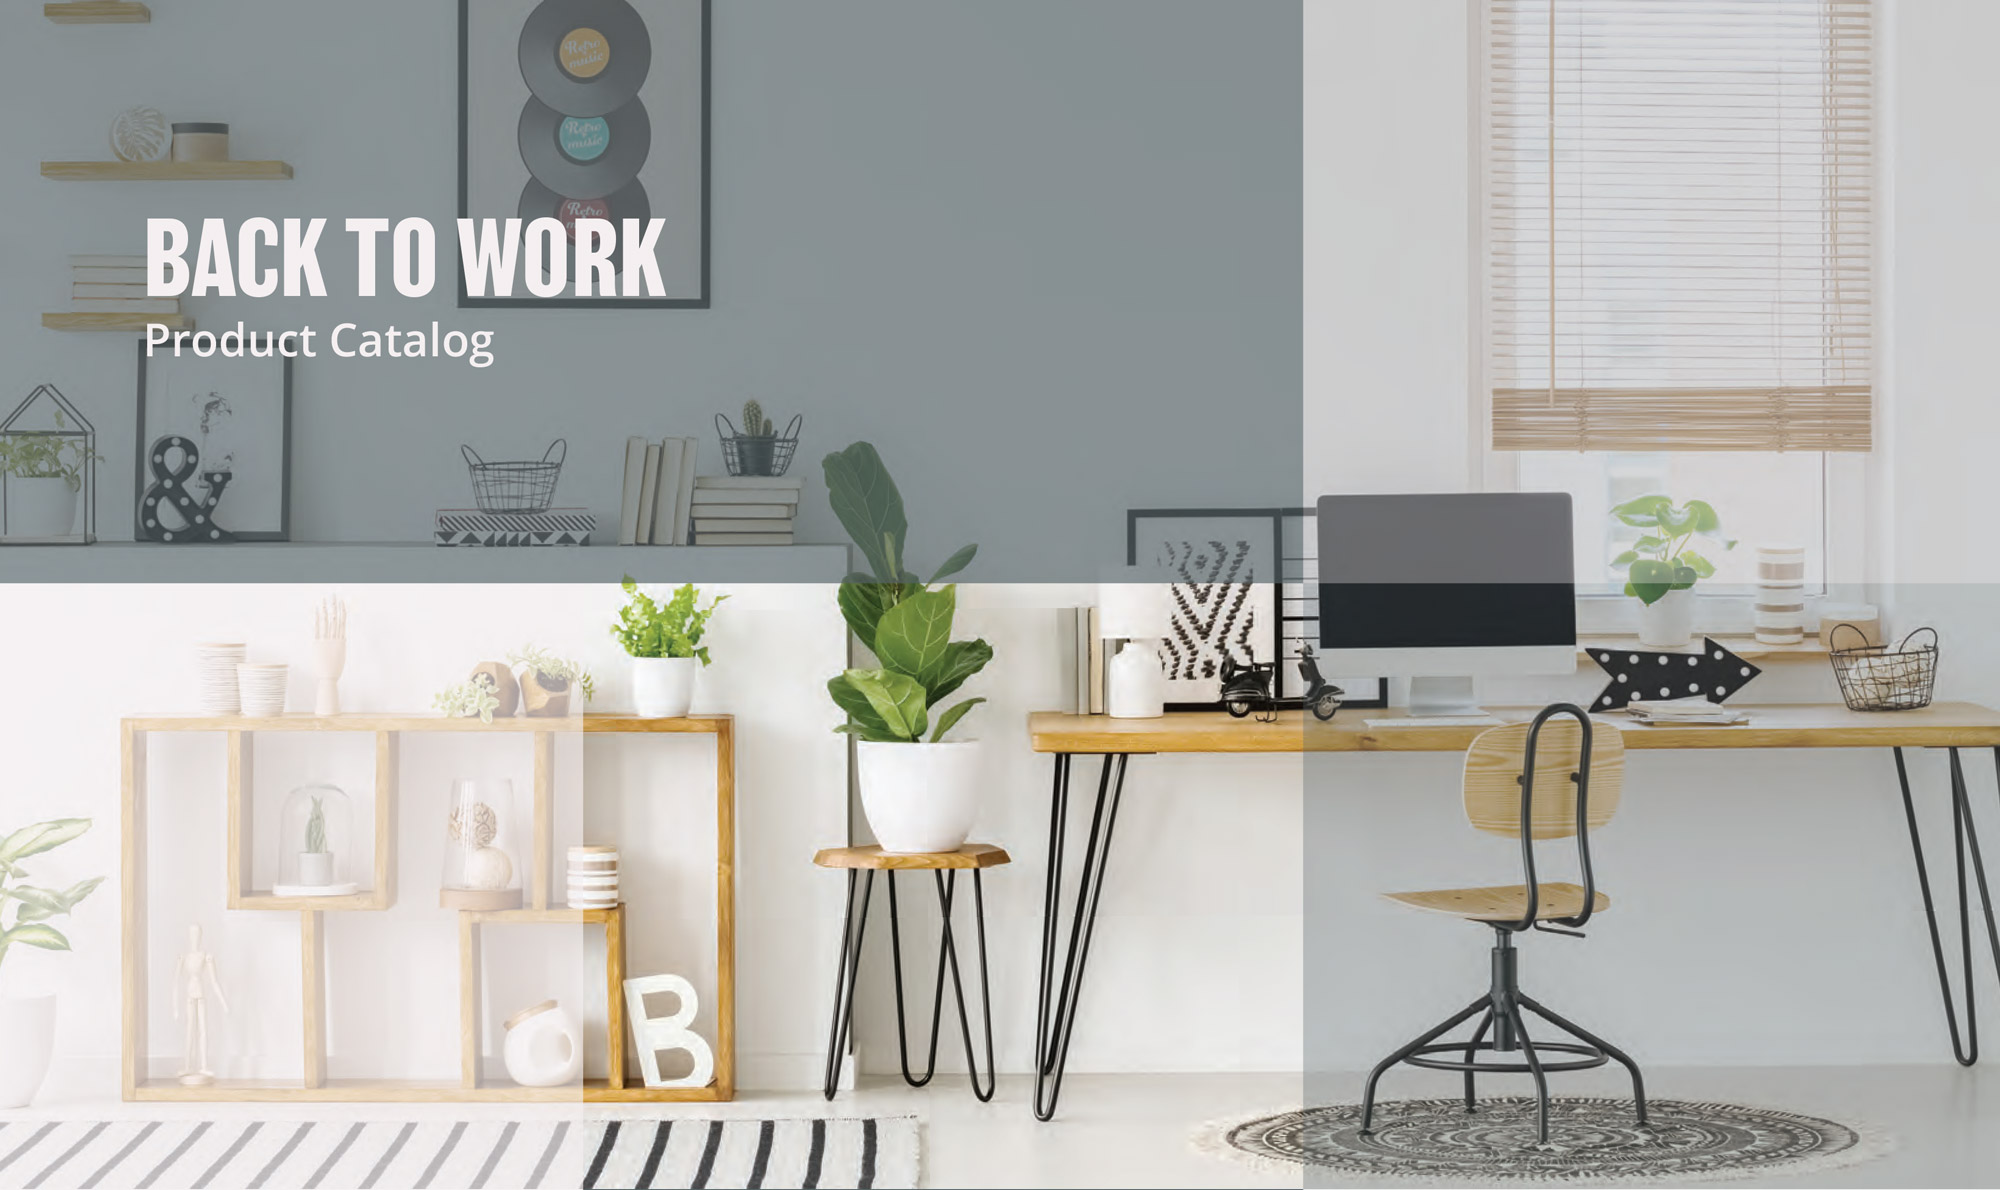 Back to Work Product Catalog